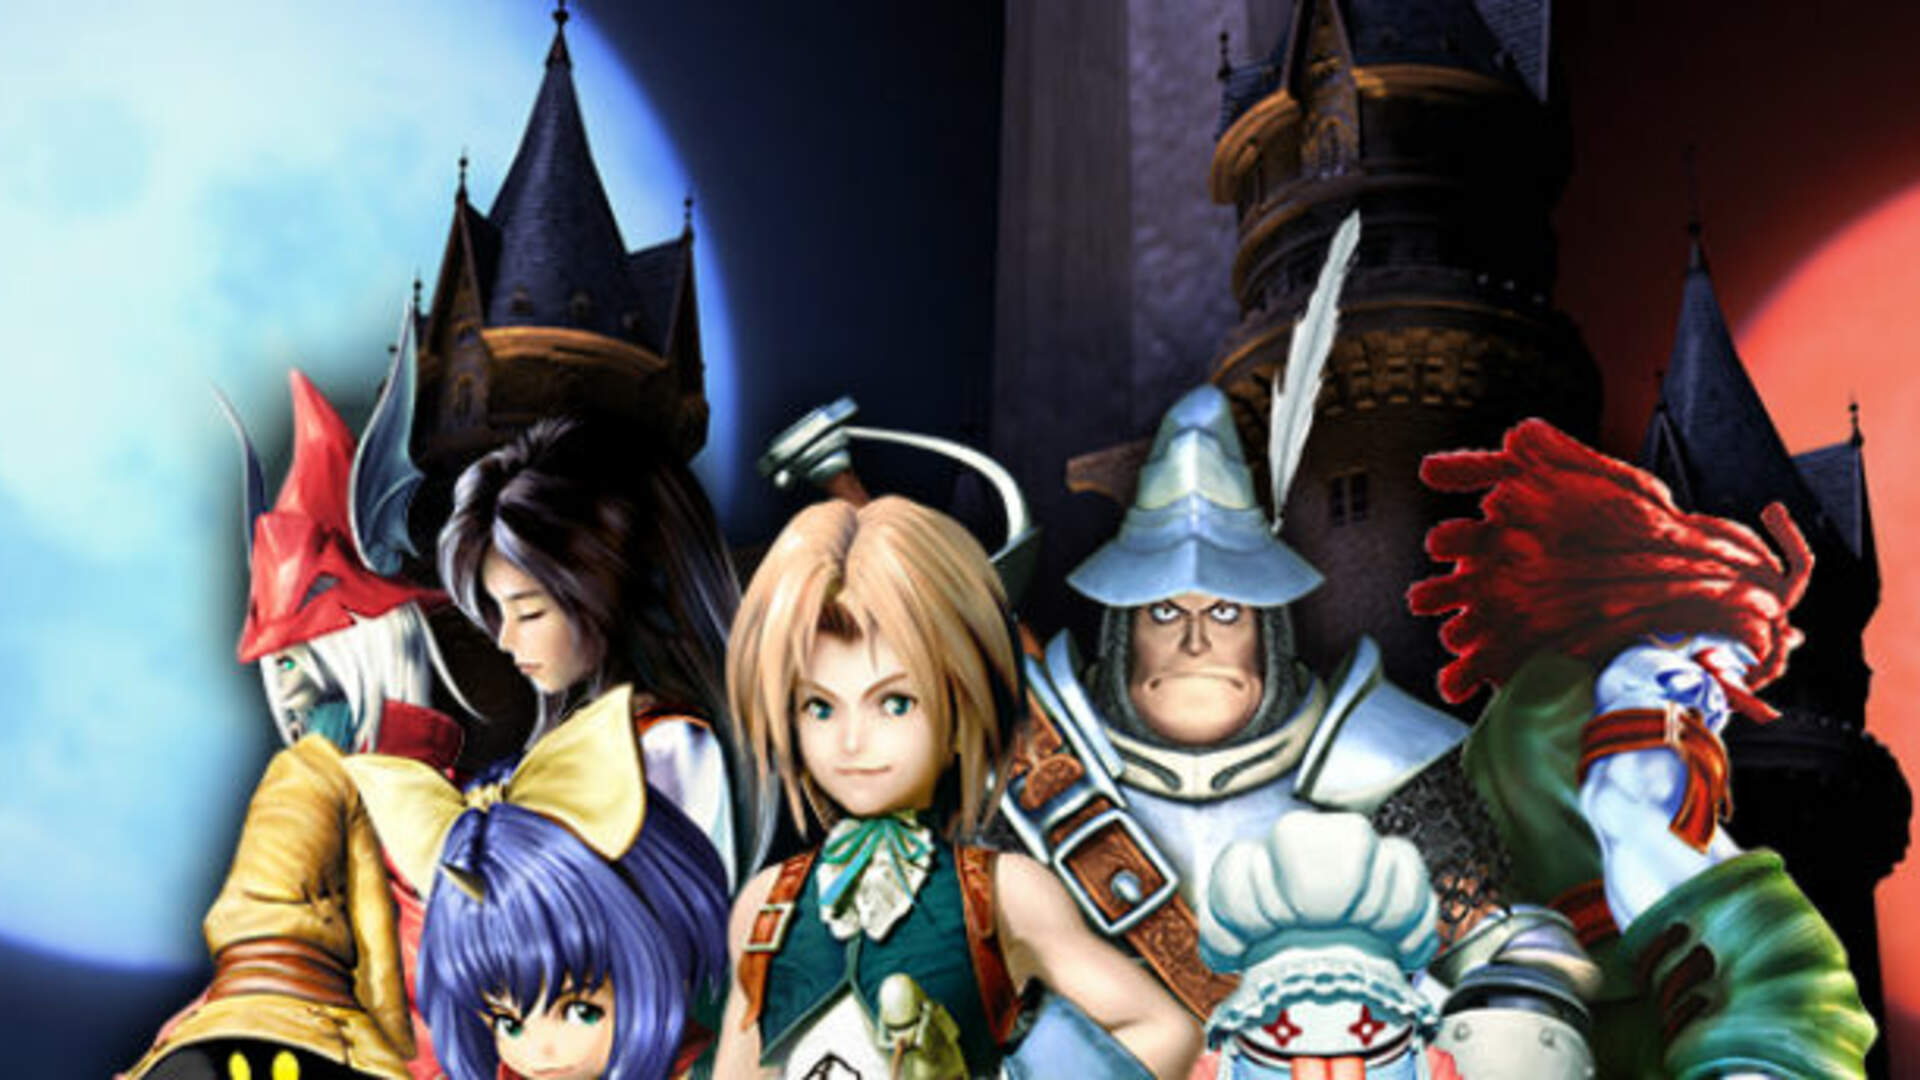 The Written Final Fantasy IX Report Part 2: The Guy with the FMV Sequence Is Probably the Villain